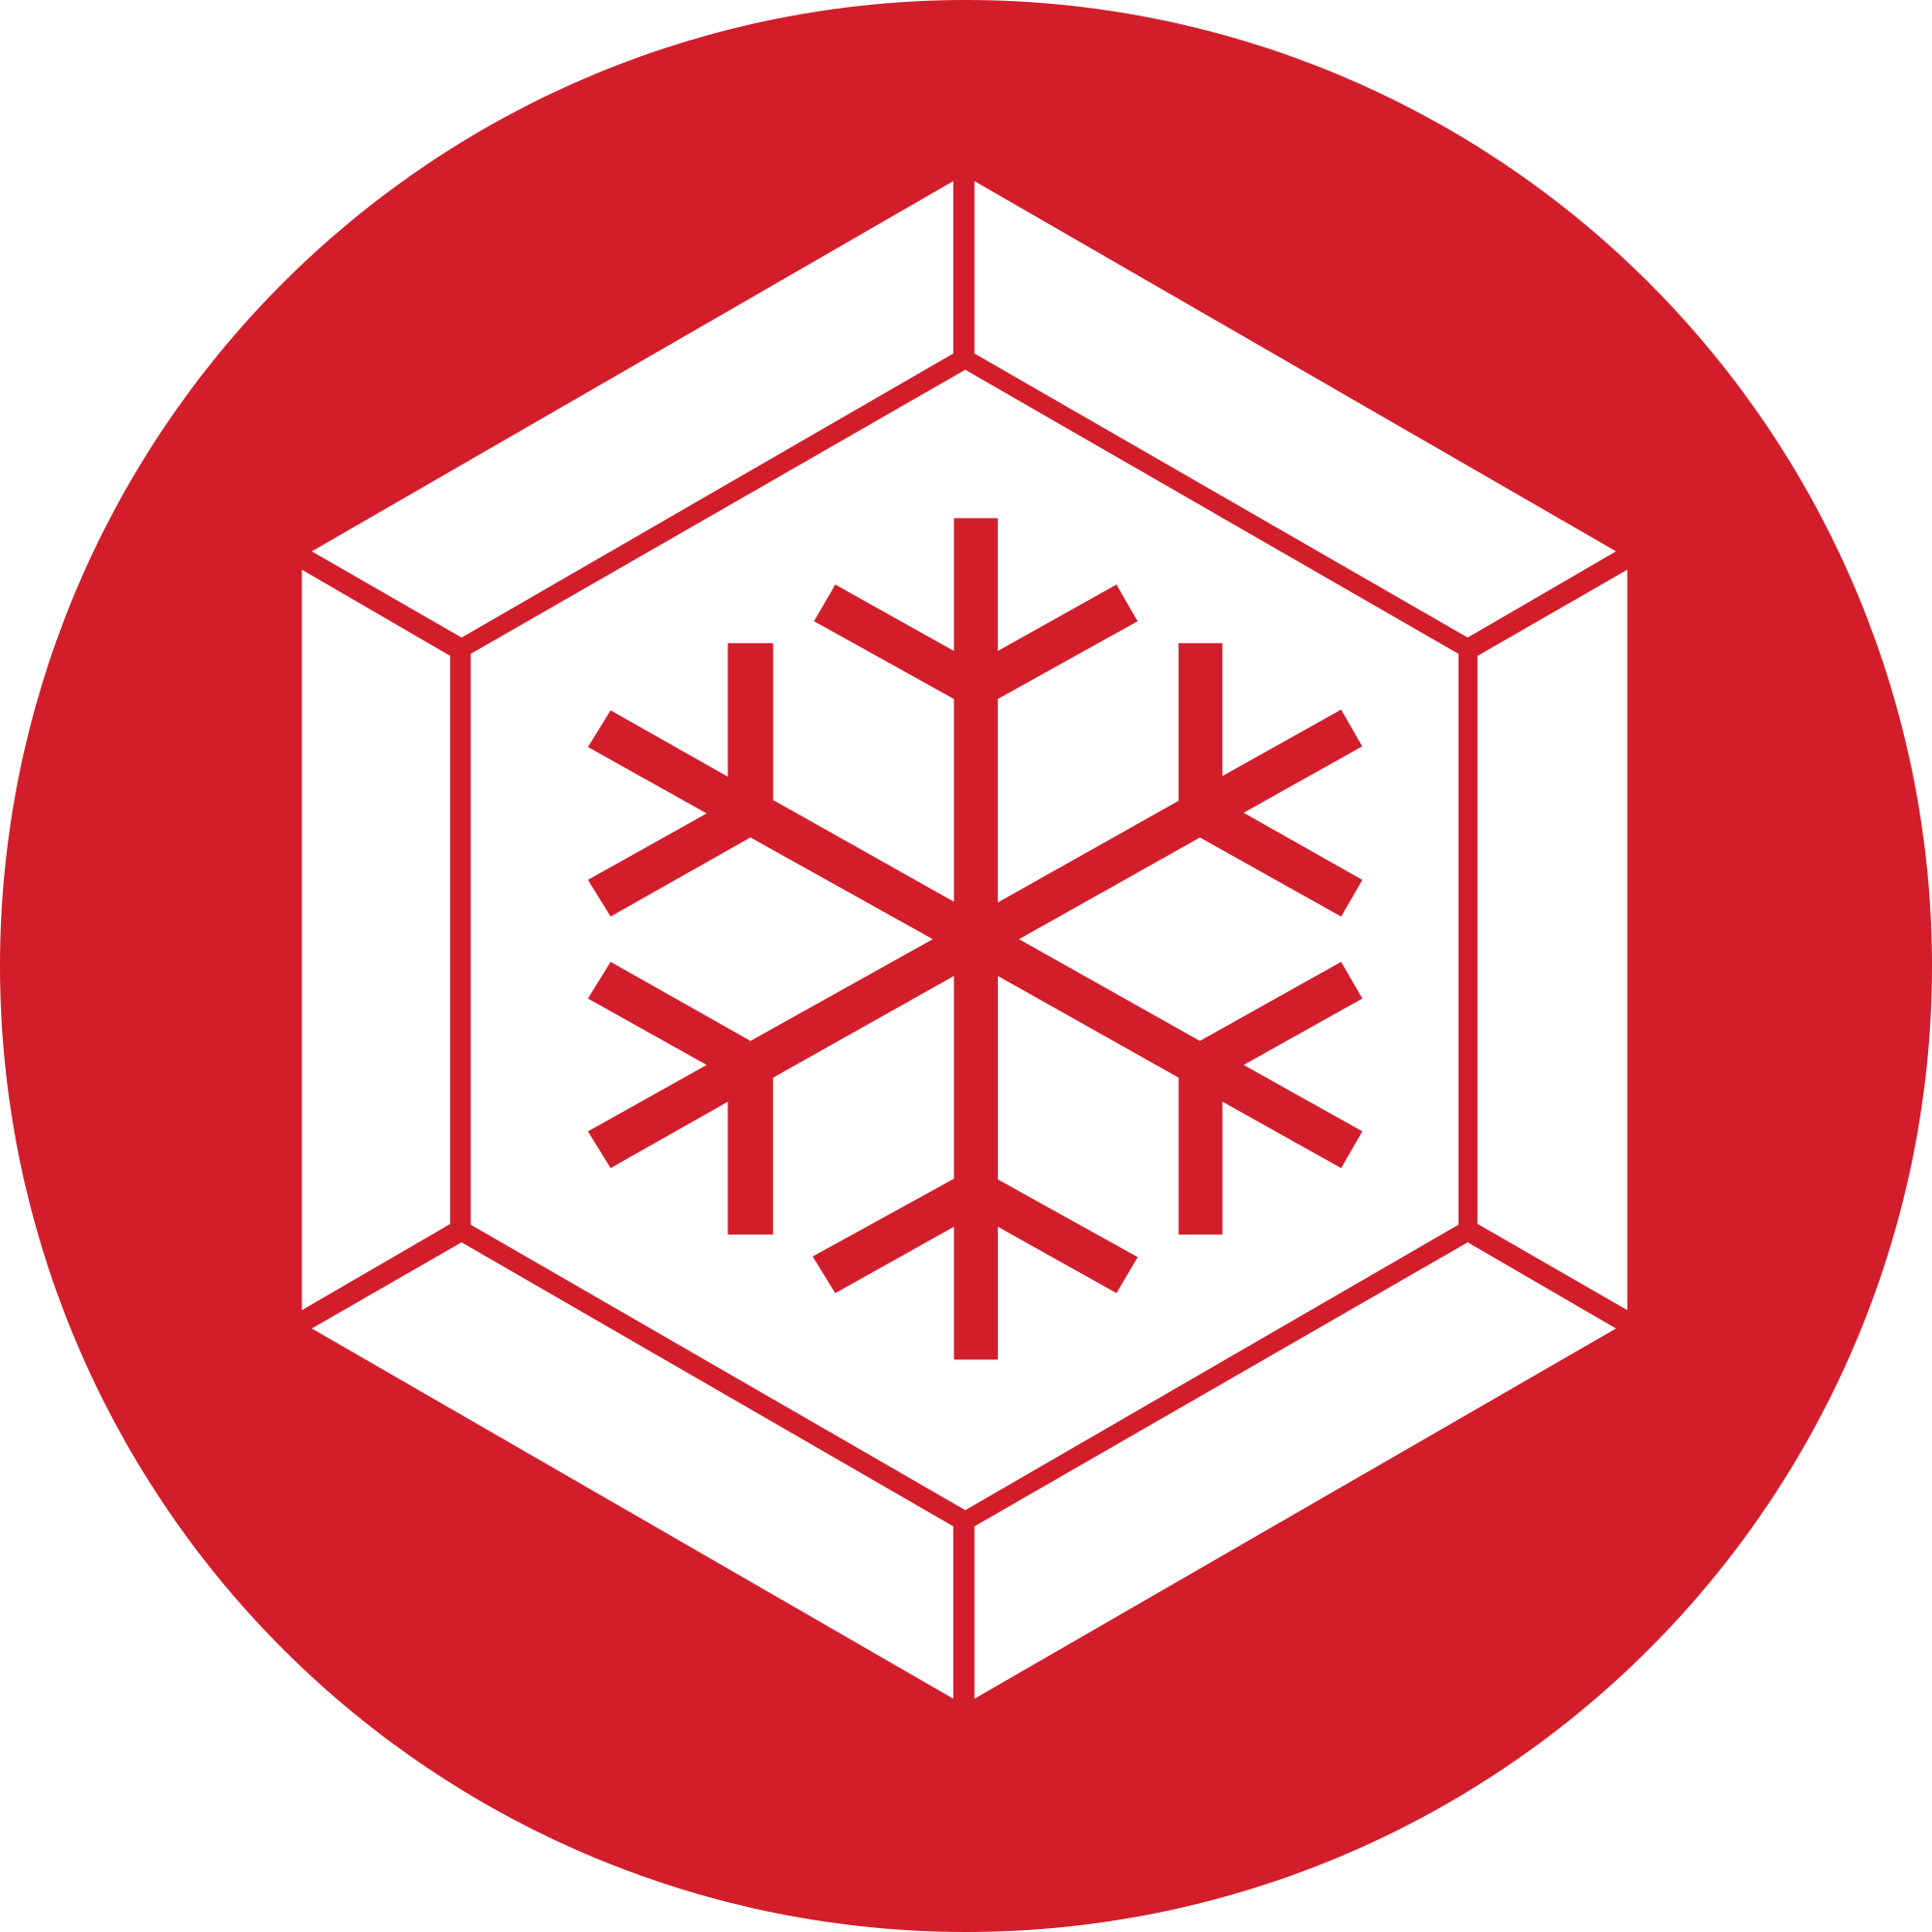 SnowGem (XSG) Logo .SVG and .PNG Files Download